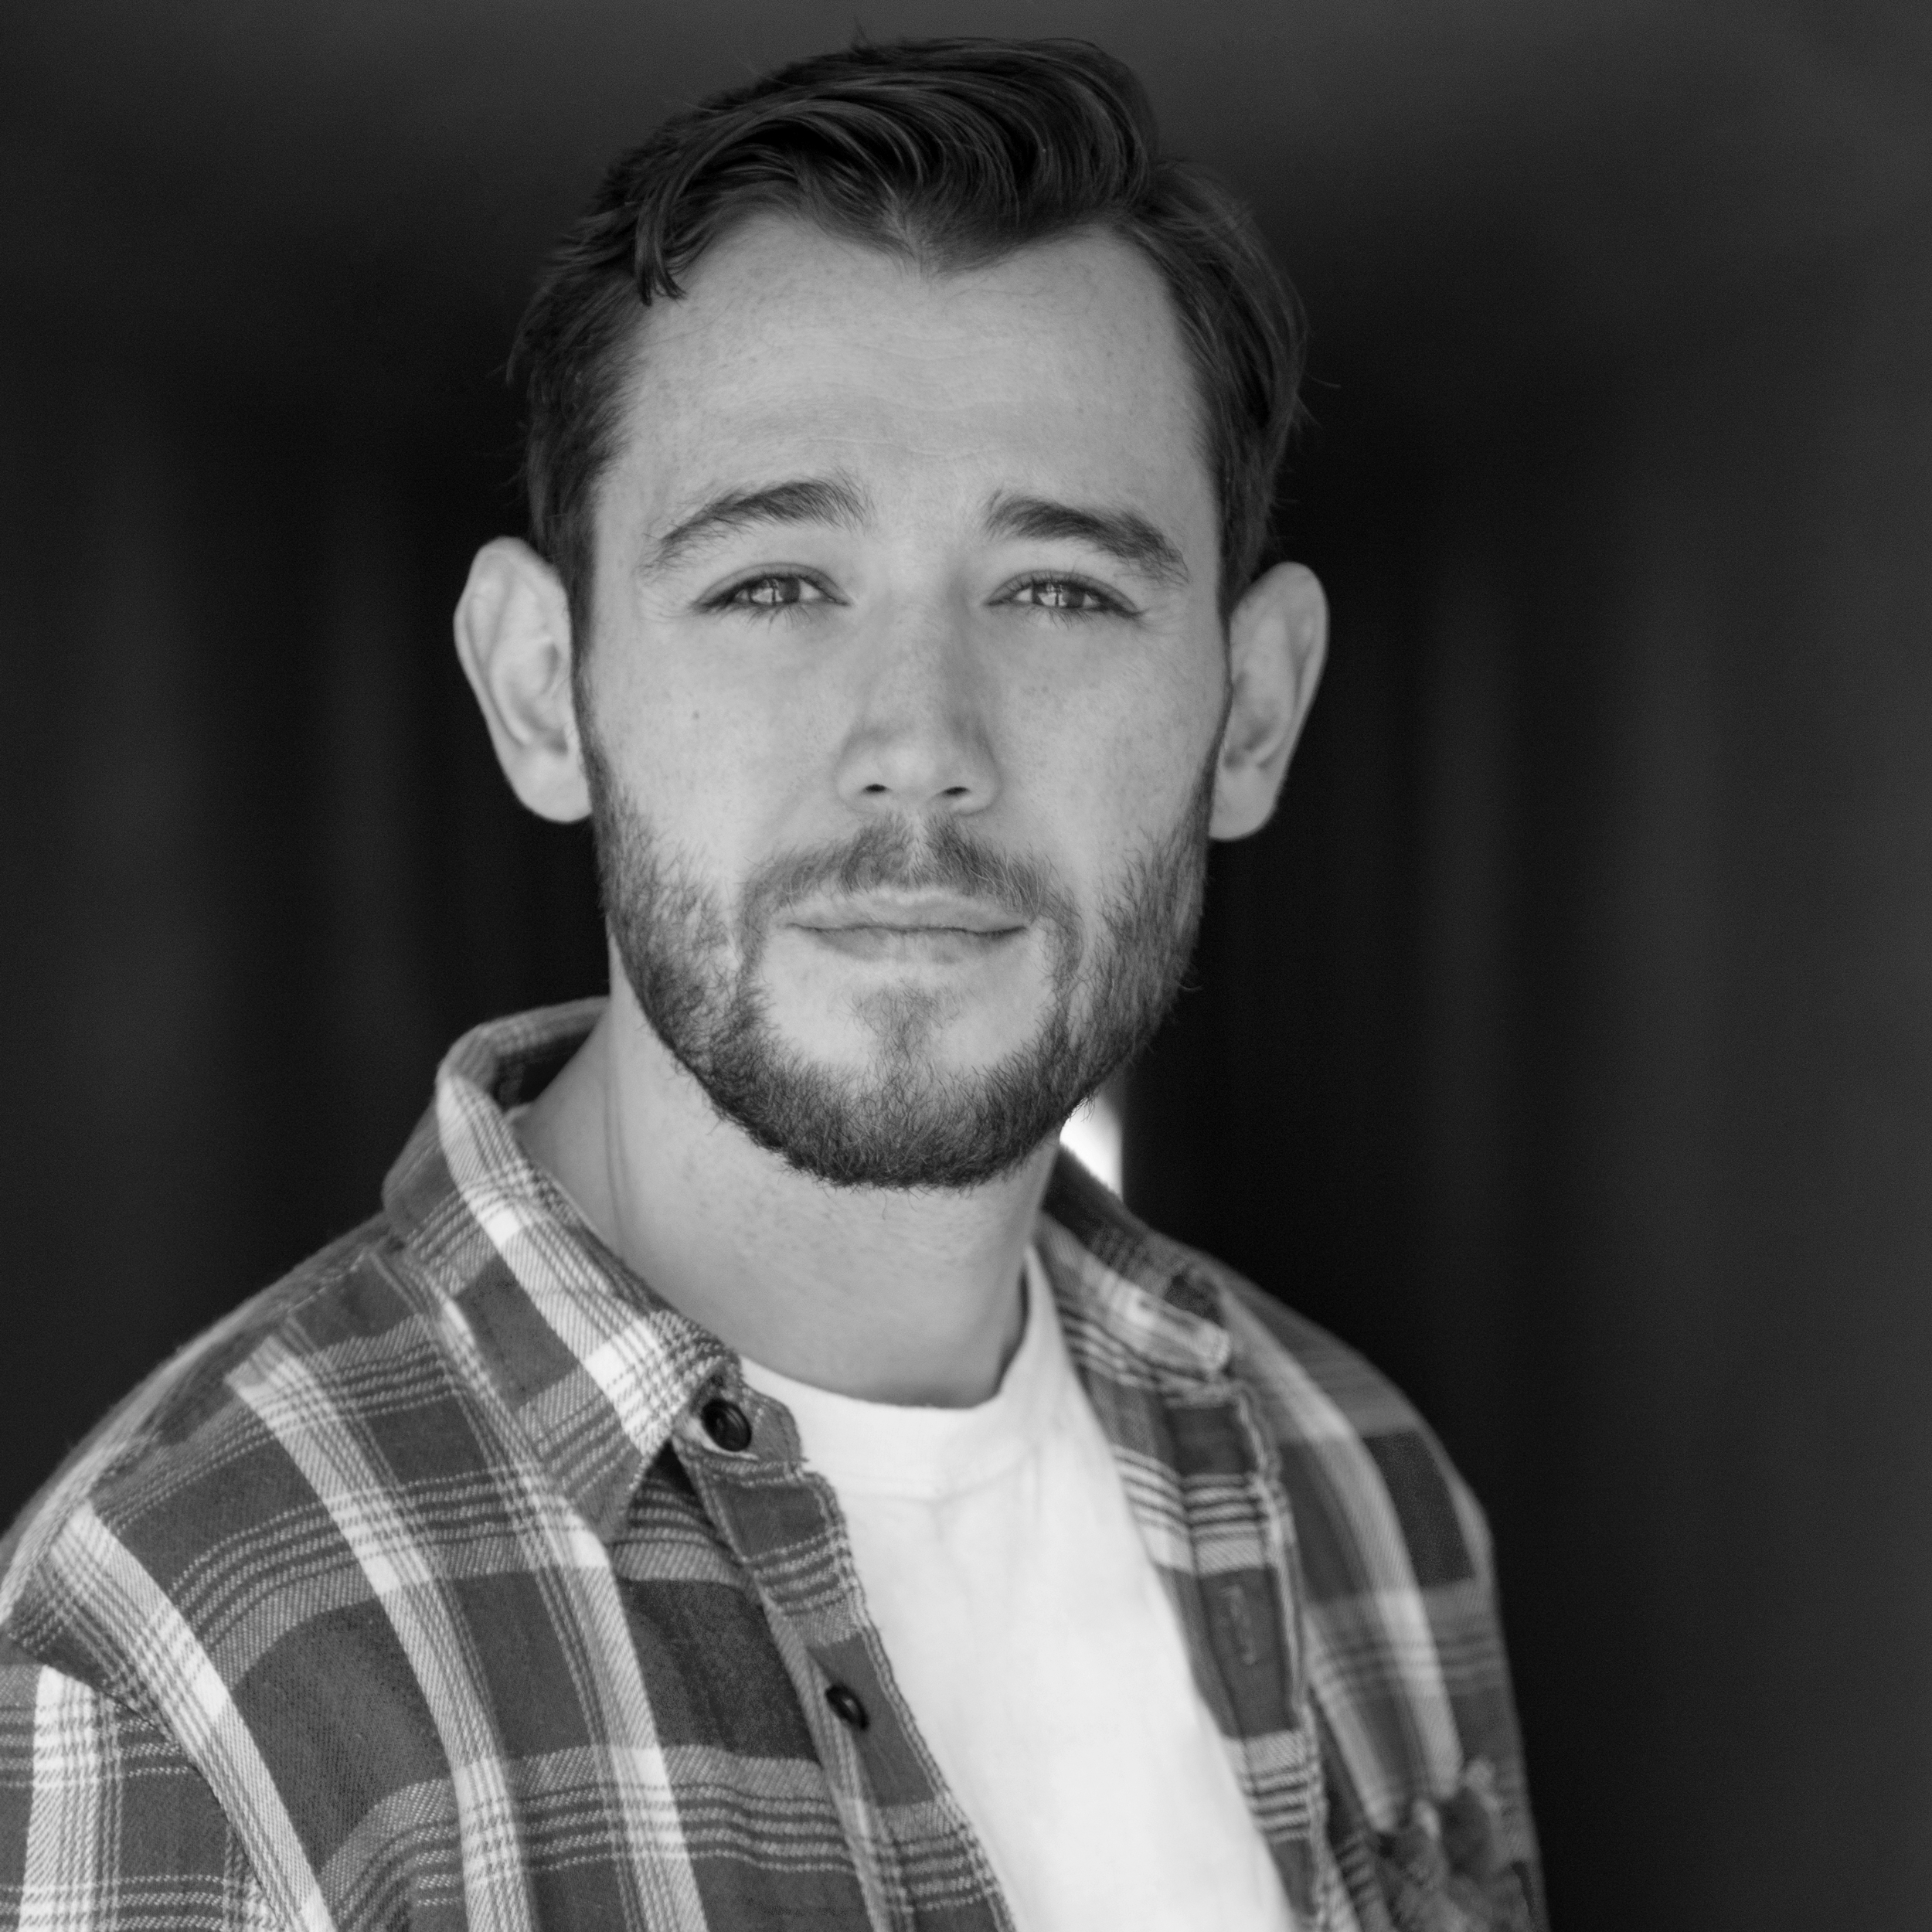 Charlie Chappell - Actor, Producer, Aspiring Human